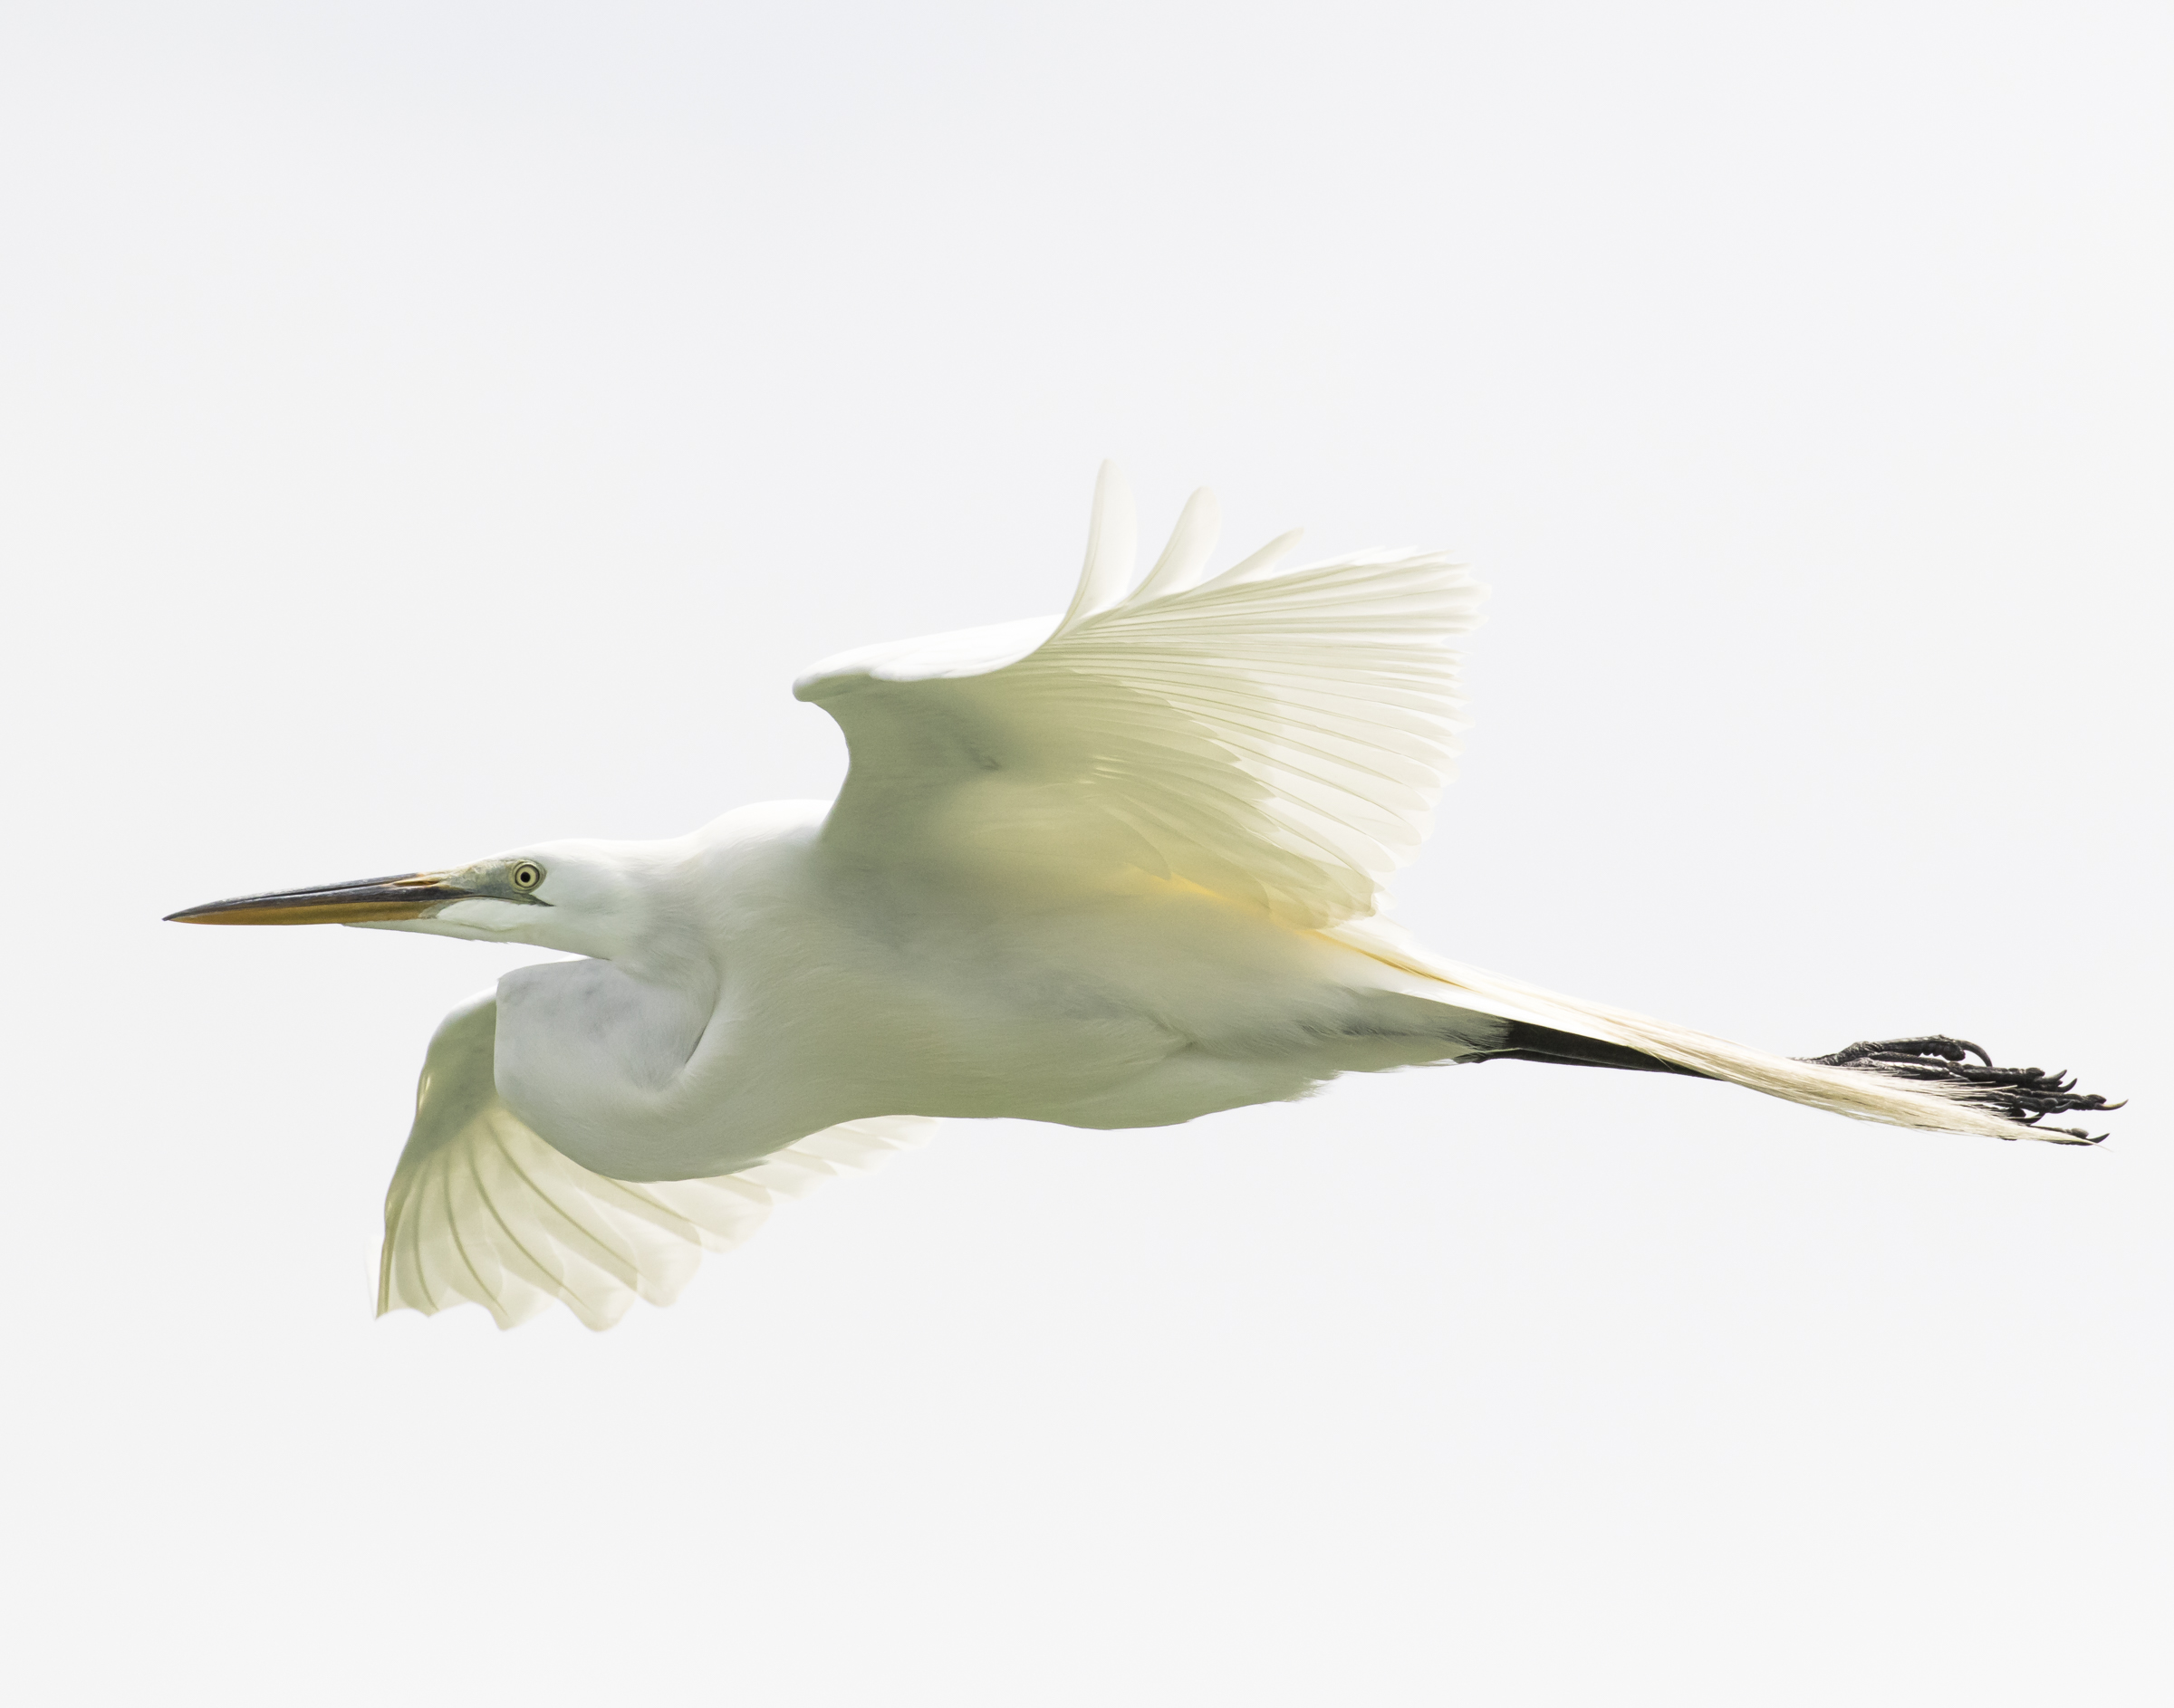 Great Egret. Photo: Clyde Comstock.